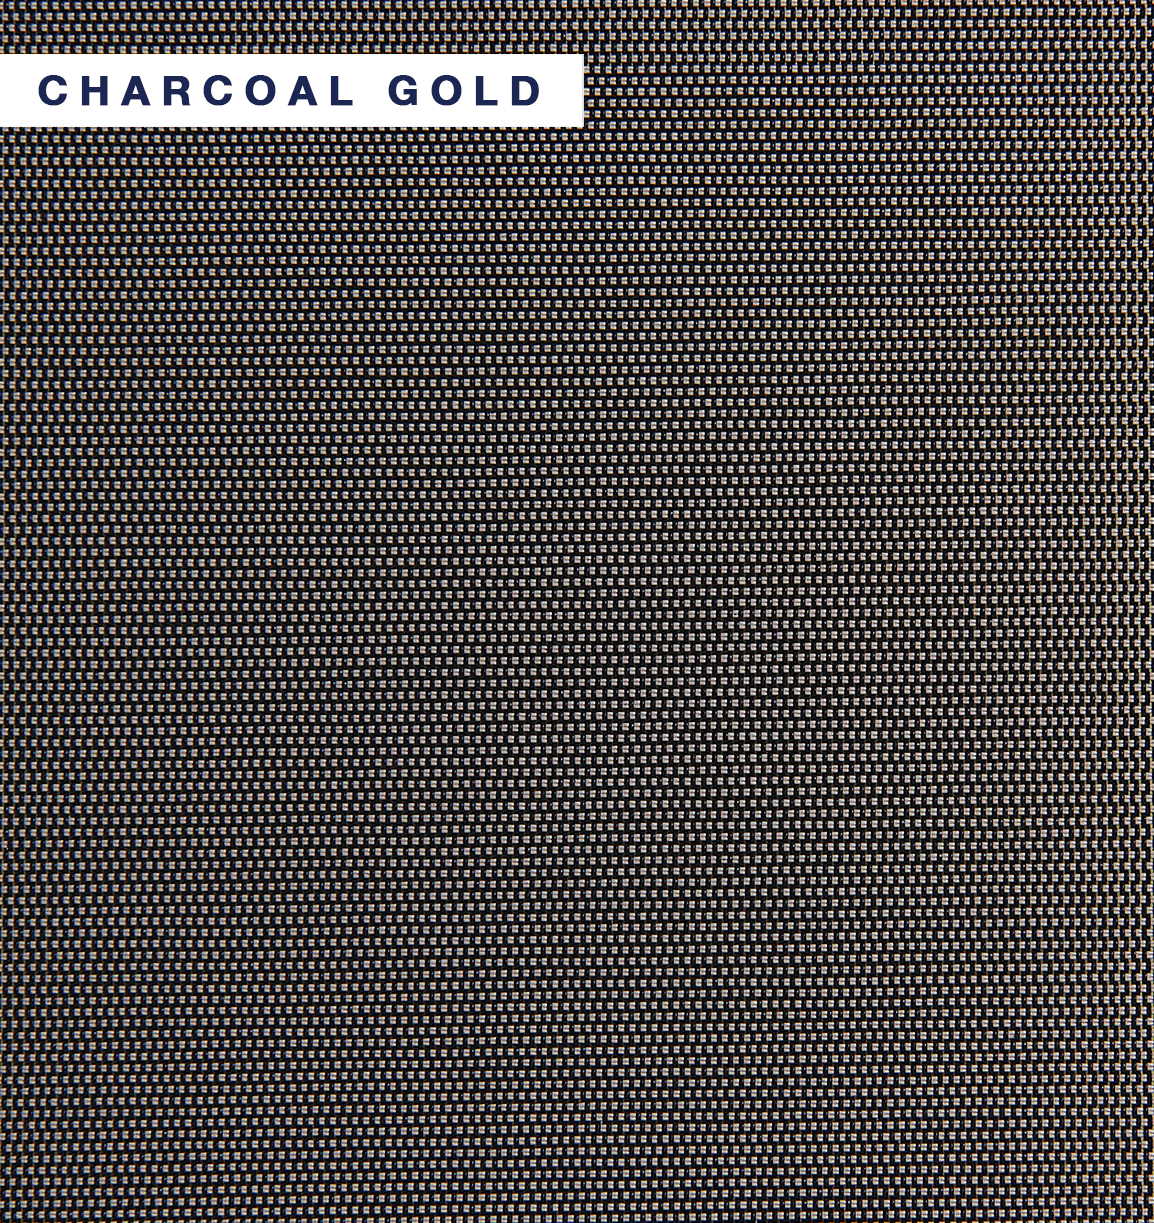 SW4300 - Charcoal Gold.jpg